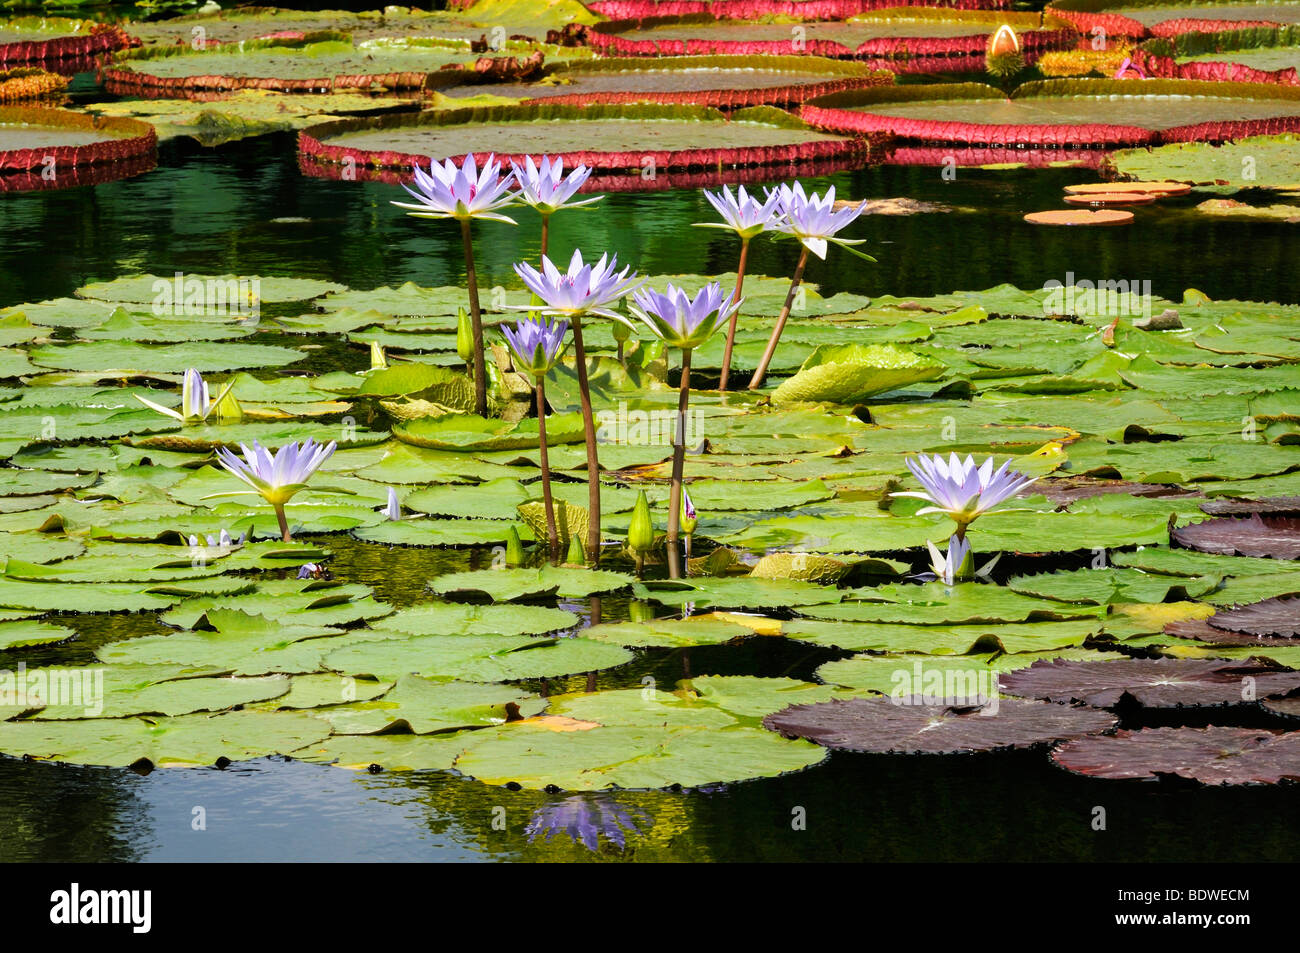 Water lily pond with blooming waterlilies (Nymphaea) Stock Photo